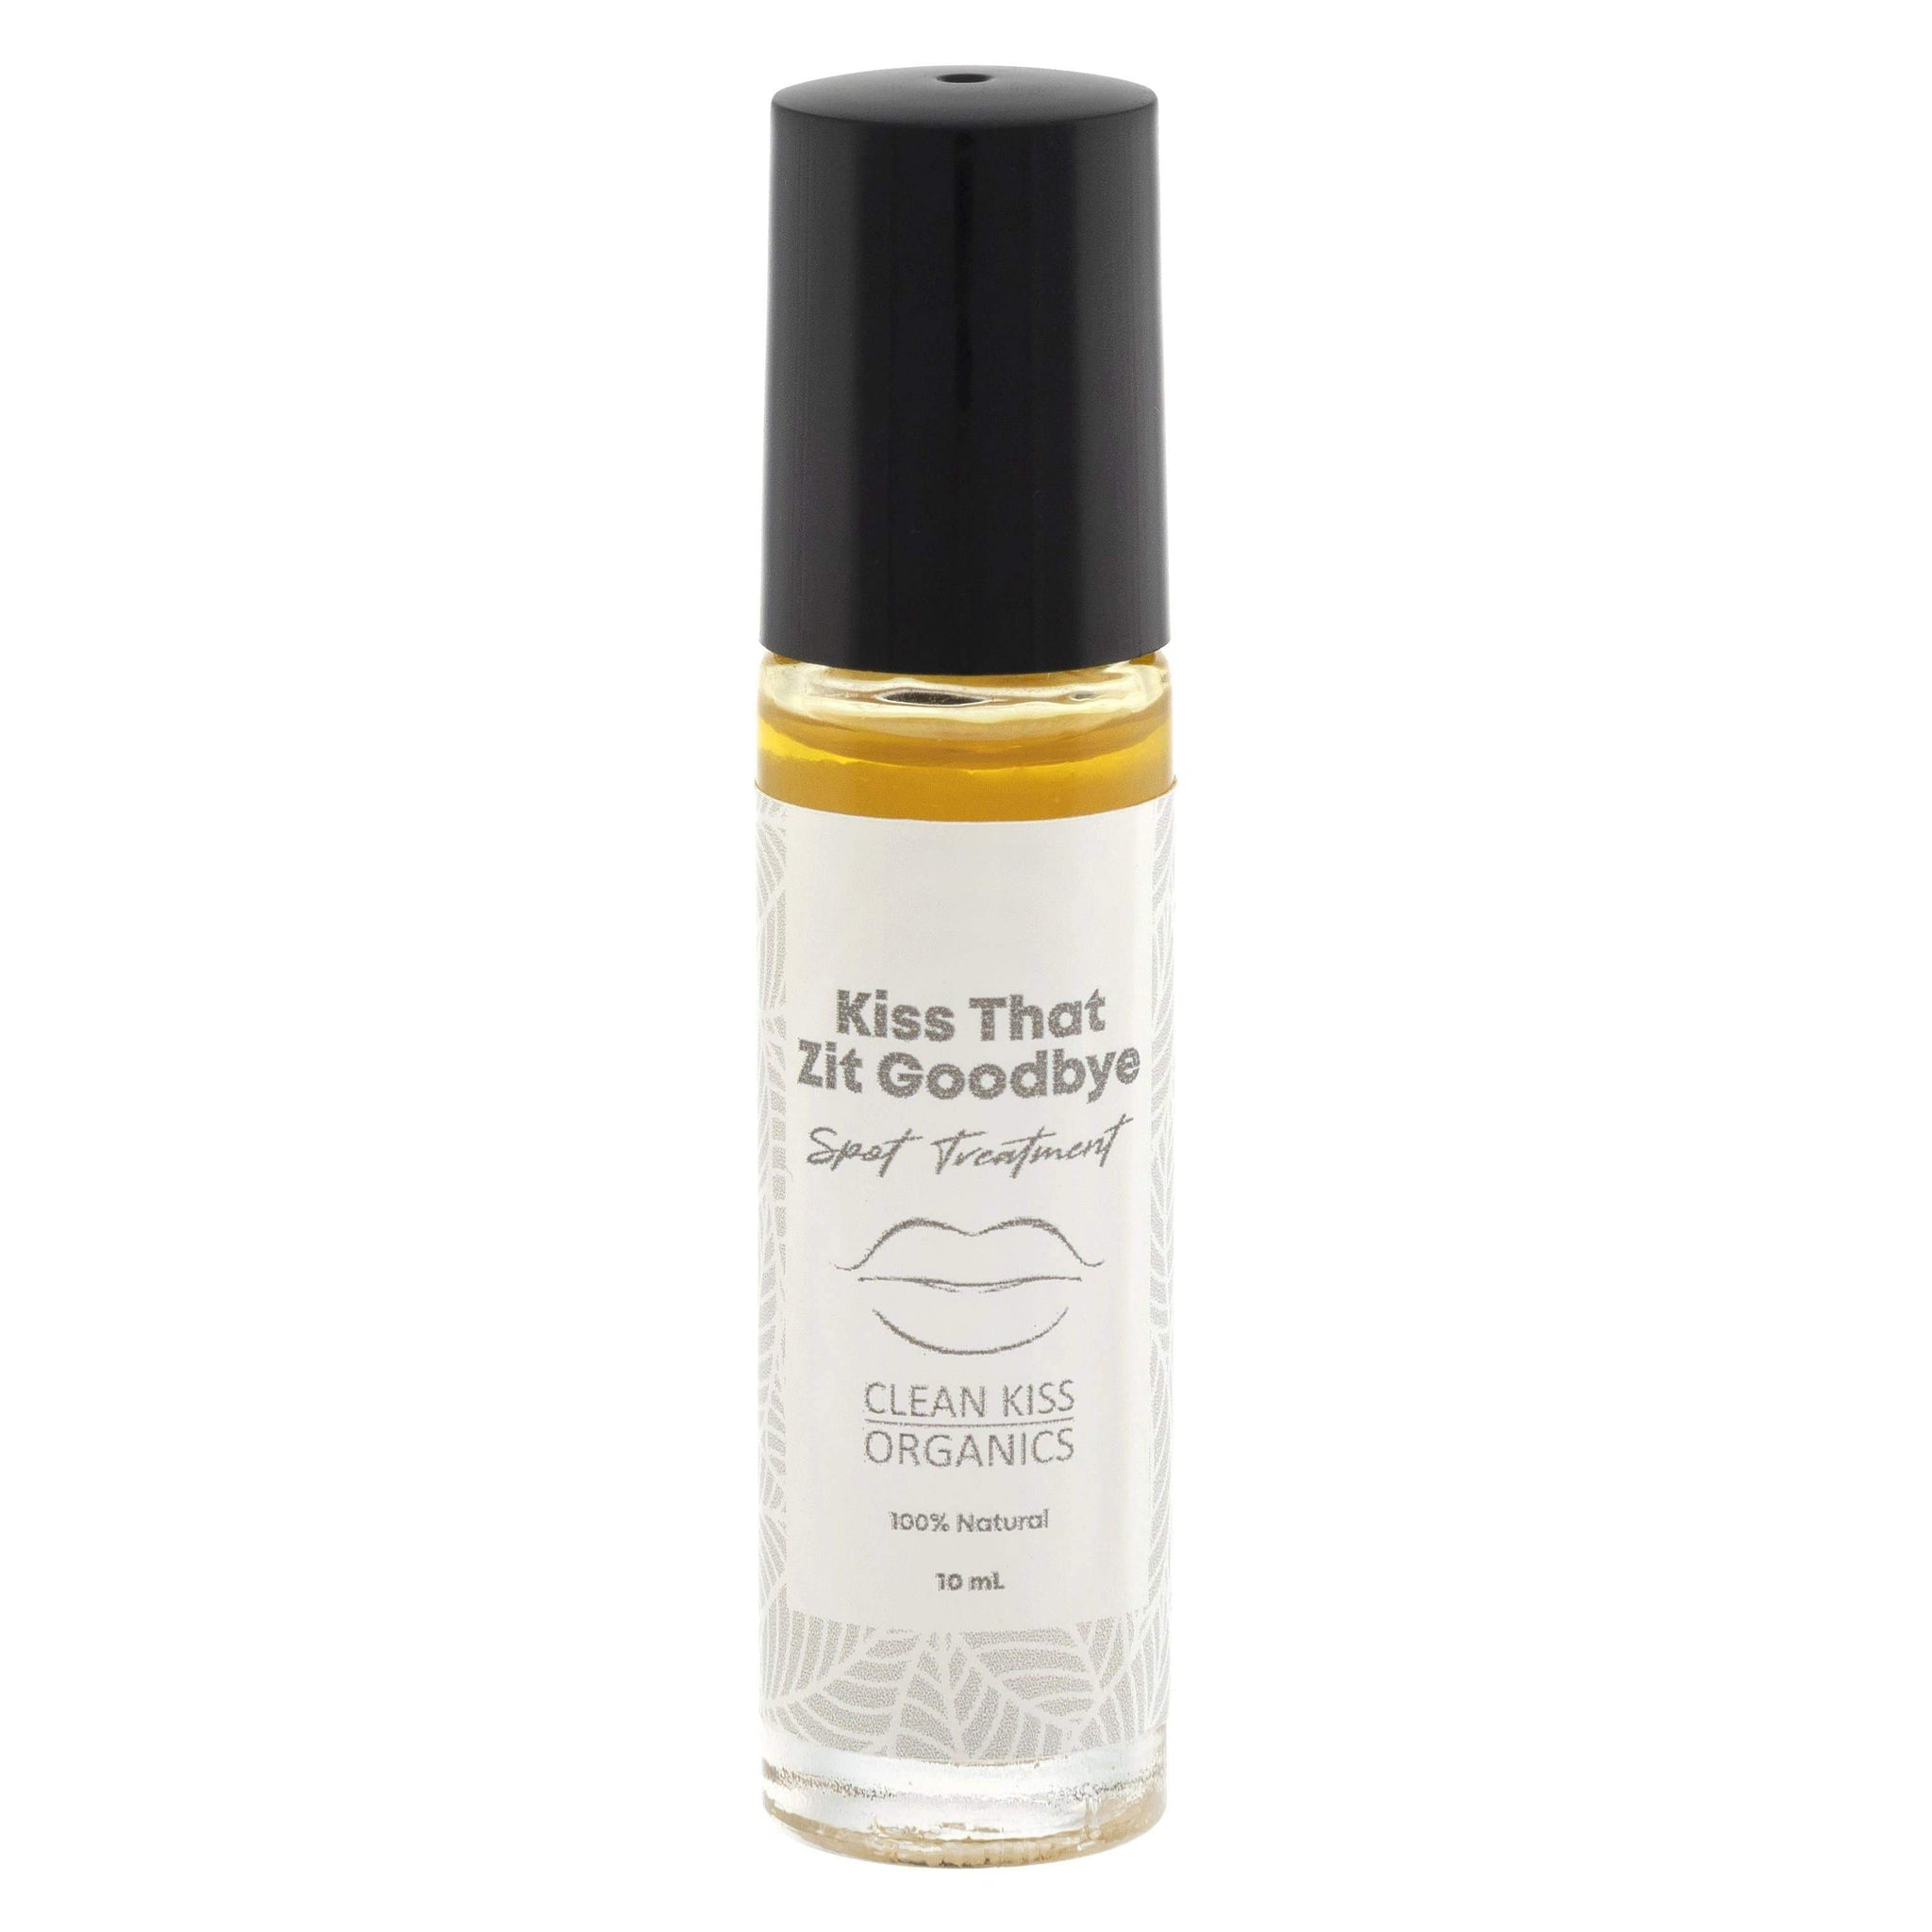 Kiss That Zit Goodbye Acne Spot Treatment Stick to treat local area pimples when they are developing.